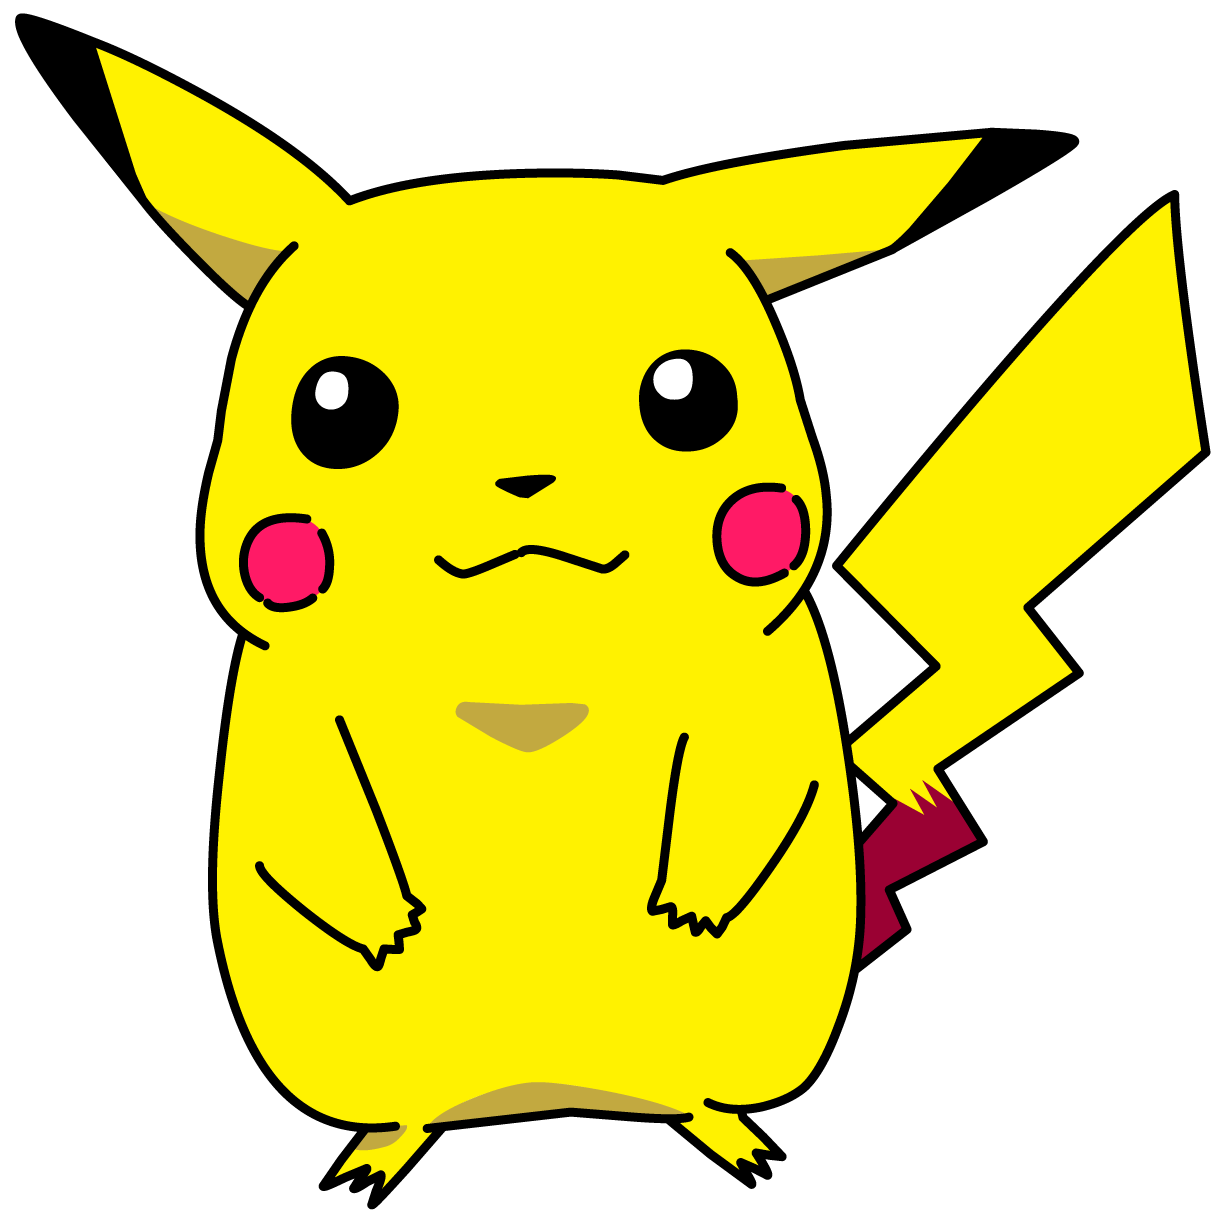 collection of pokemon. Pokeball clipart cute pikachu